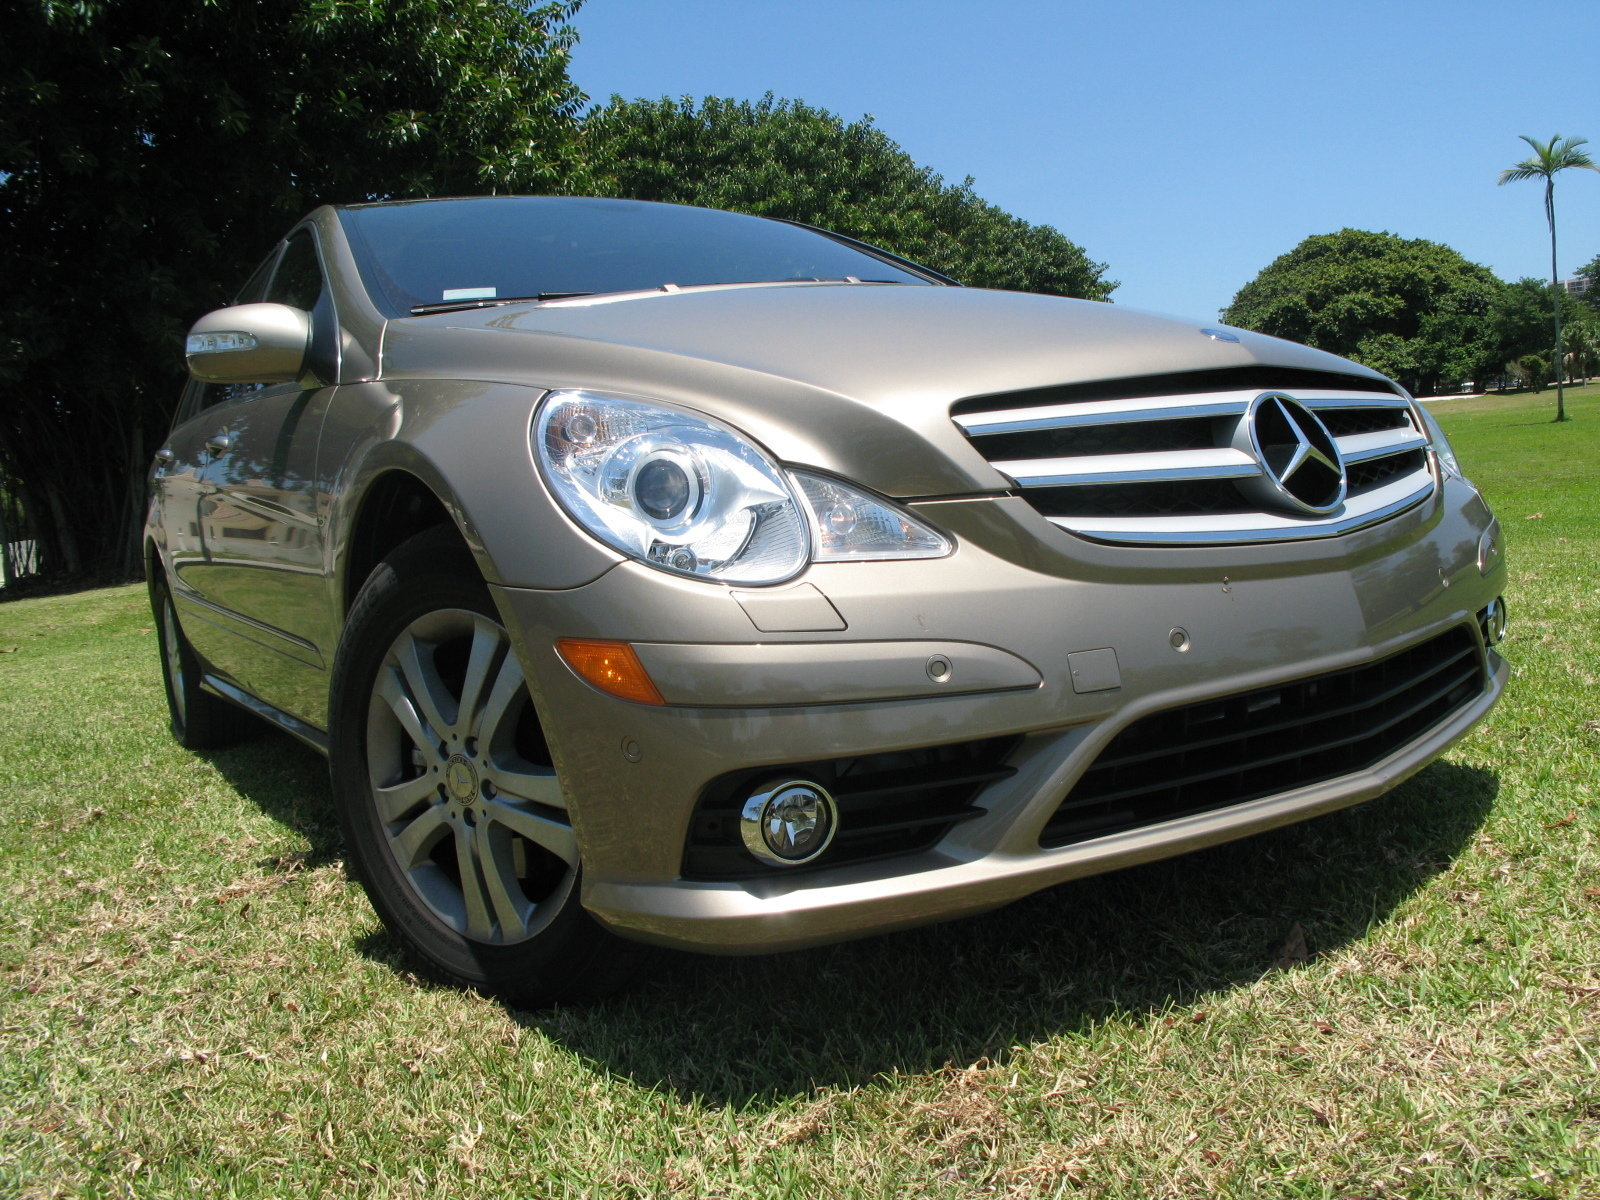 2008 mercedes r320 cdi 4 matic picture 248570 car review top speed. Black Bedroom Furniture Sets. Home Design Ideas